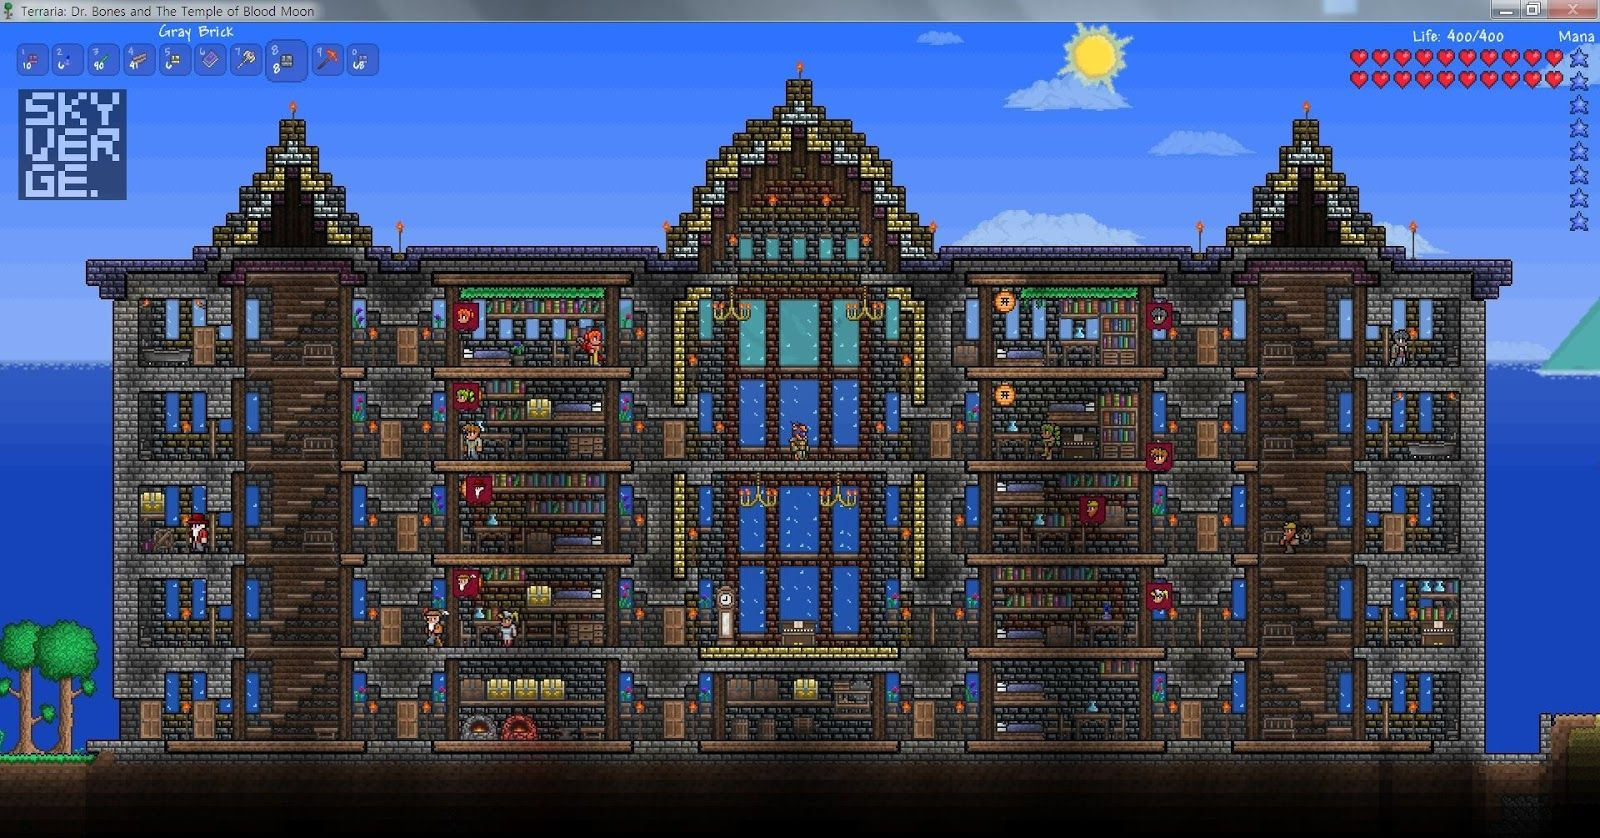 Pin by Matthew on Terraria house ideas | Small living rooms